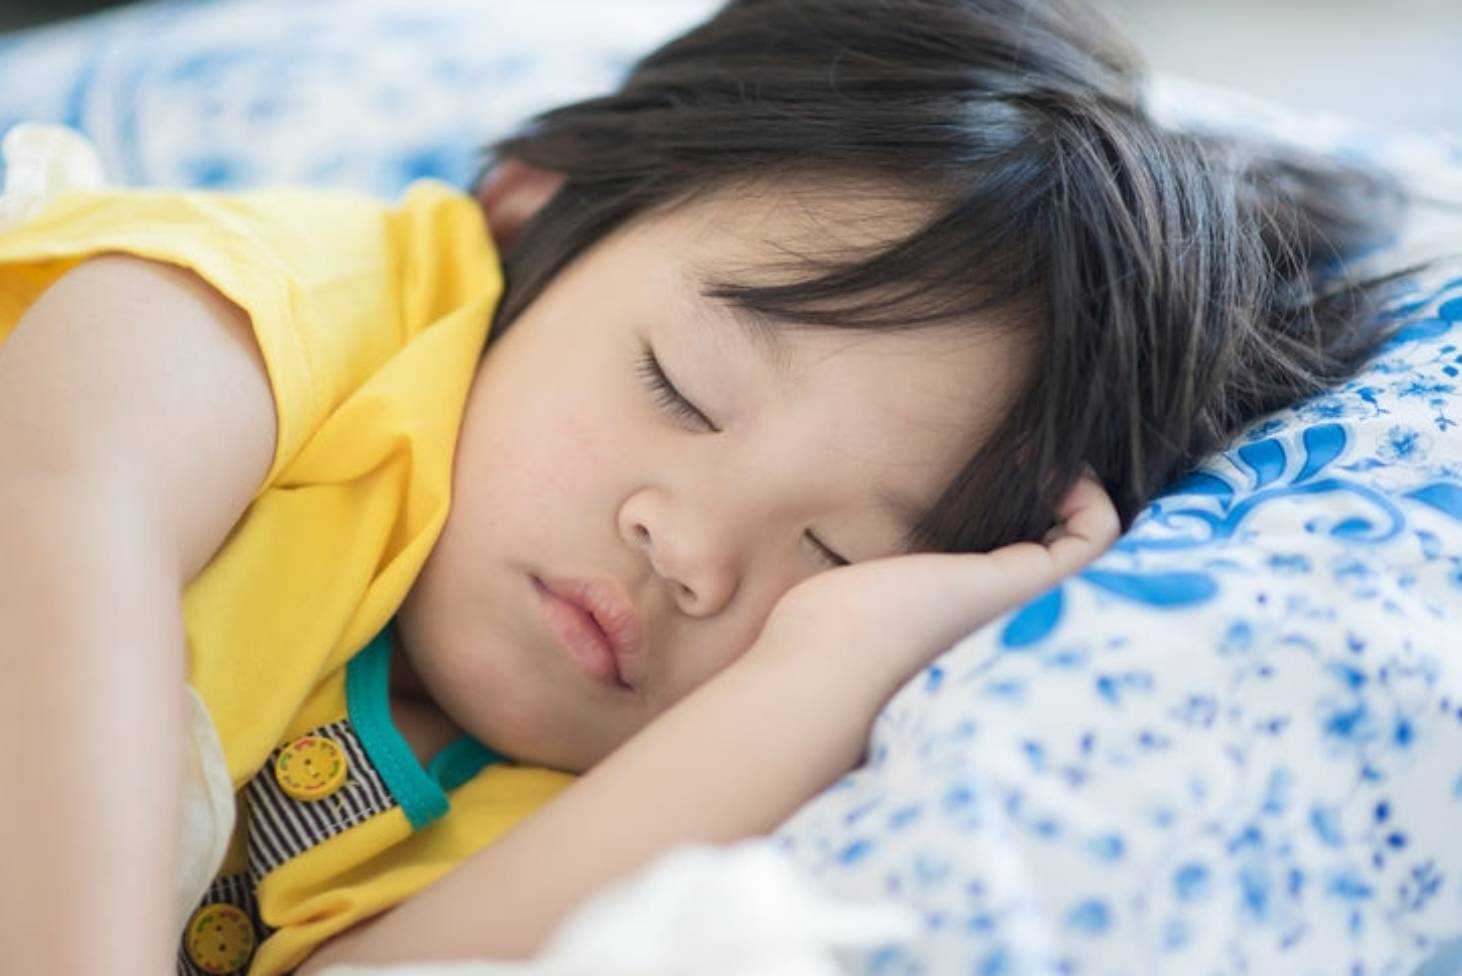 Is your child snoring? It may be a sign of a serious sleep